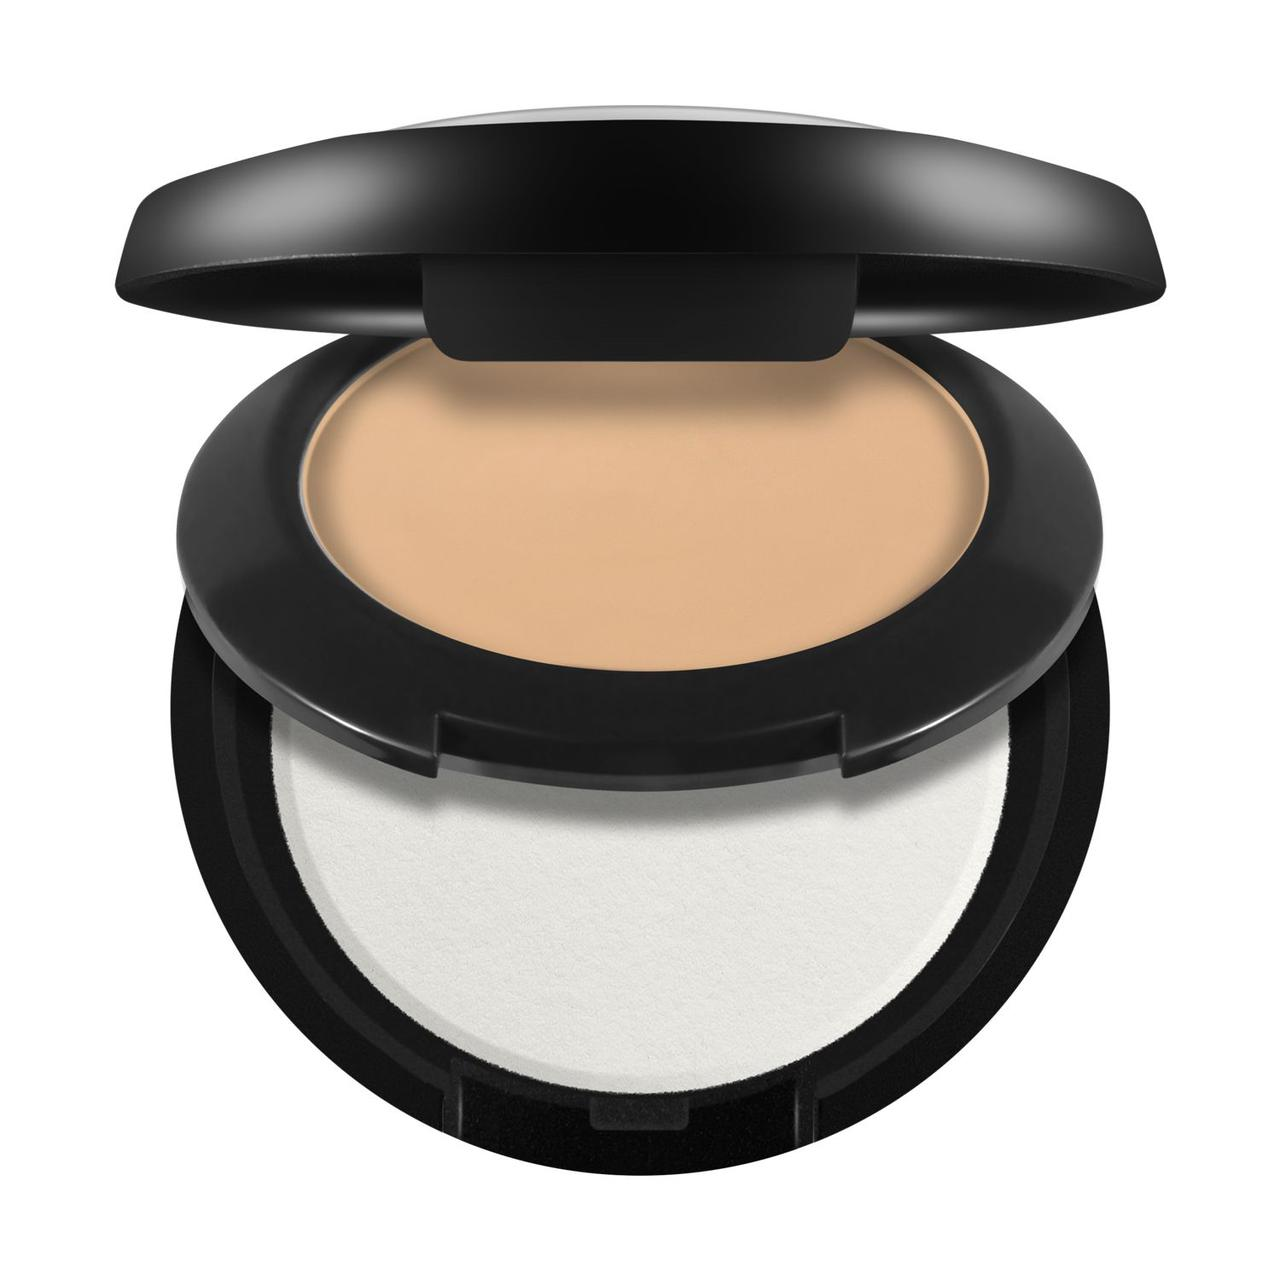 Wycon EXTREME COVER CONCEALER 02